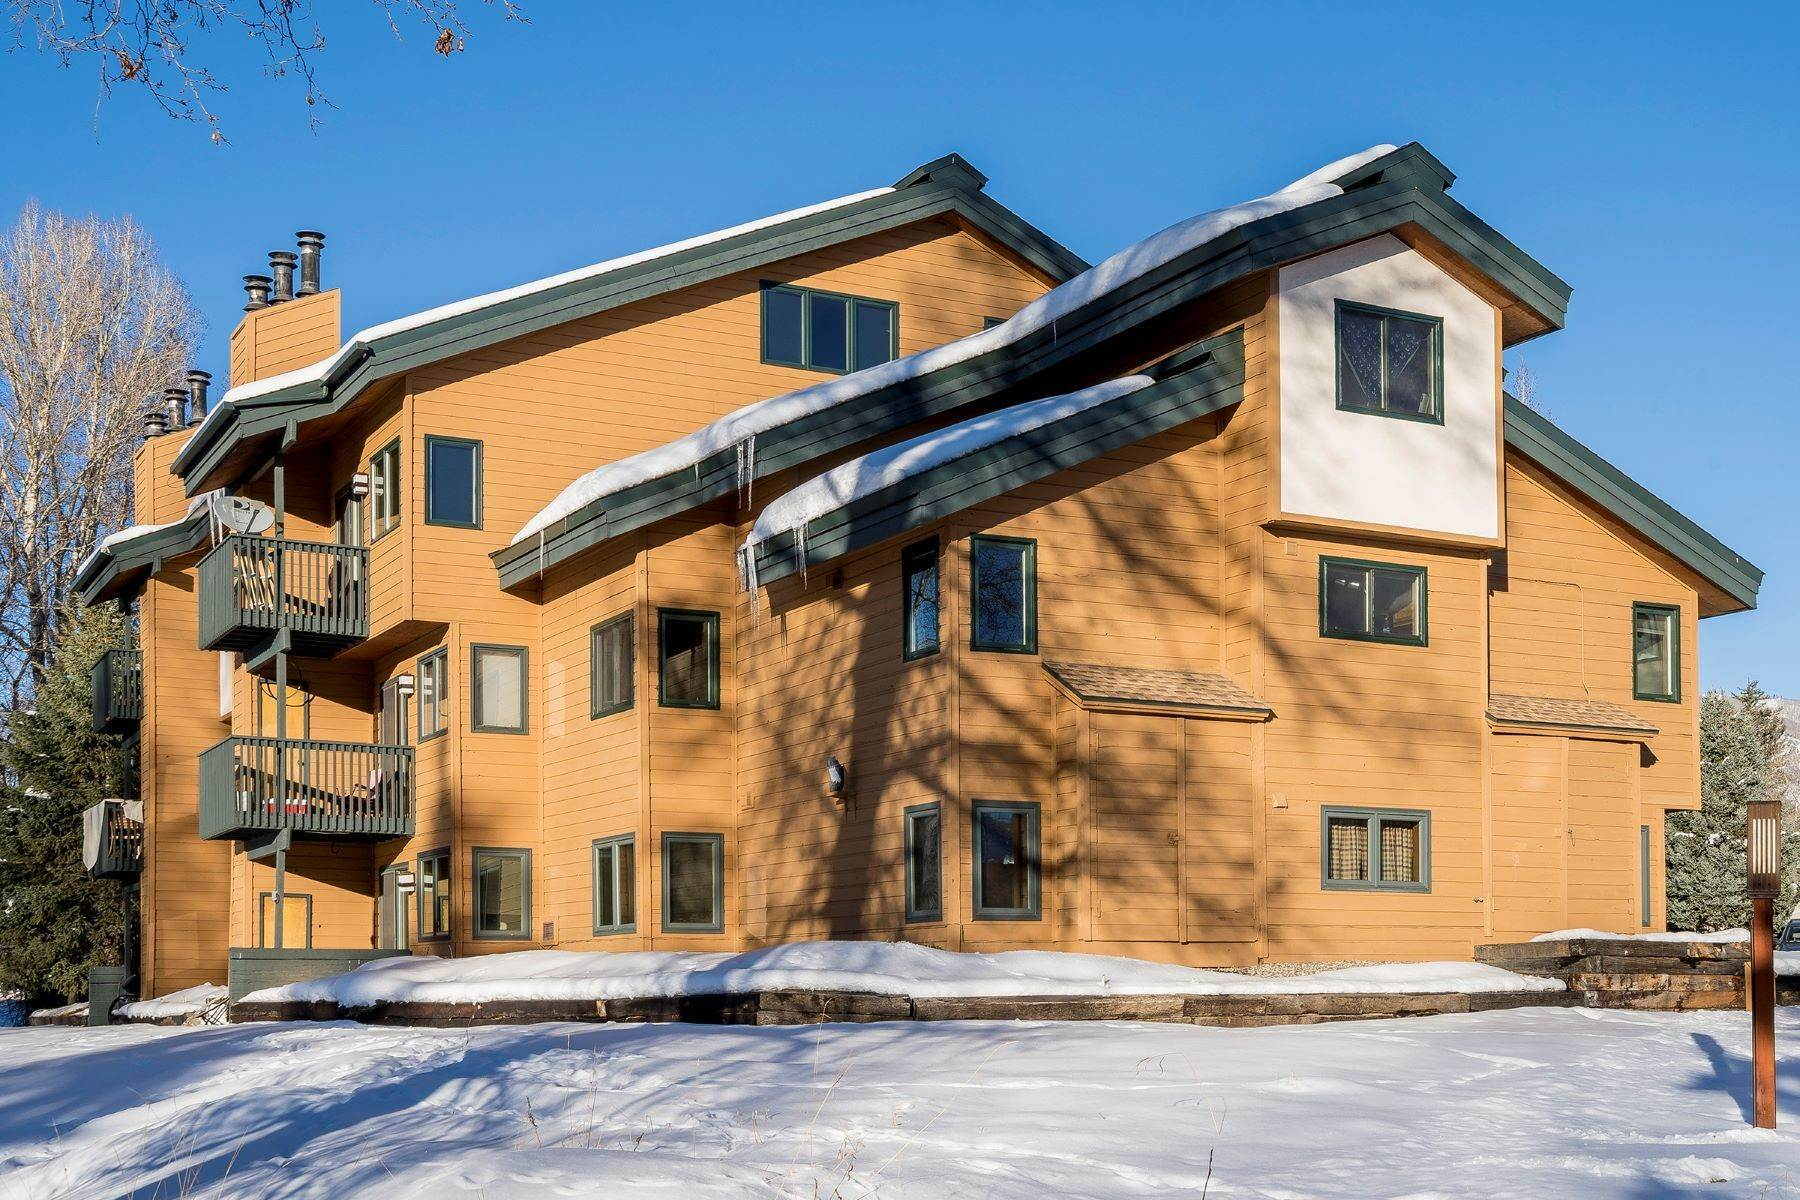 Condominiums for Sale at Ground floor unit at The Pines 540 Ore House Plaza Unit #101, Bldg A Steamboat Springs, Colorado 80487 United States